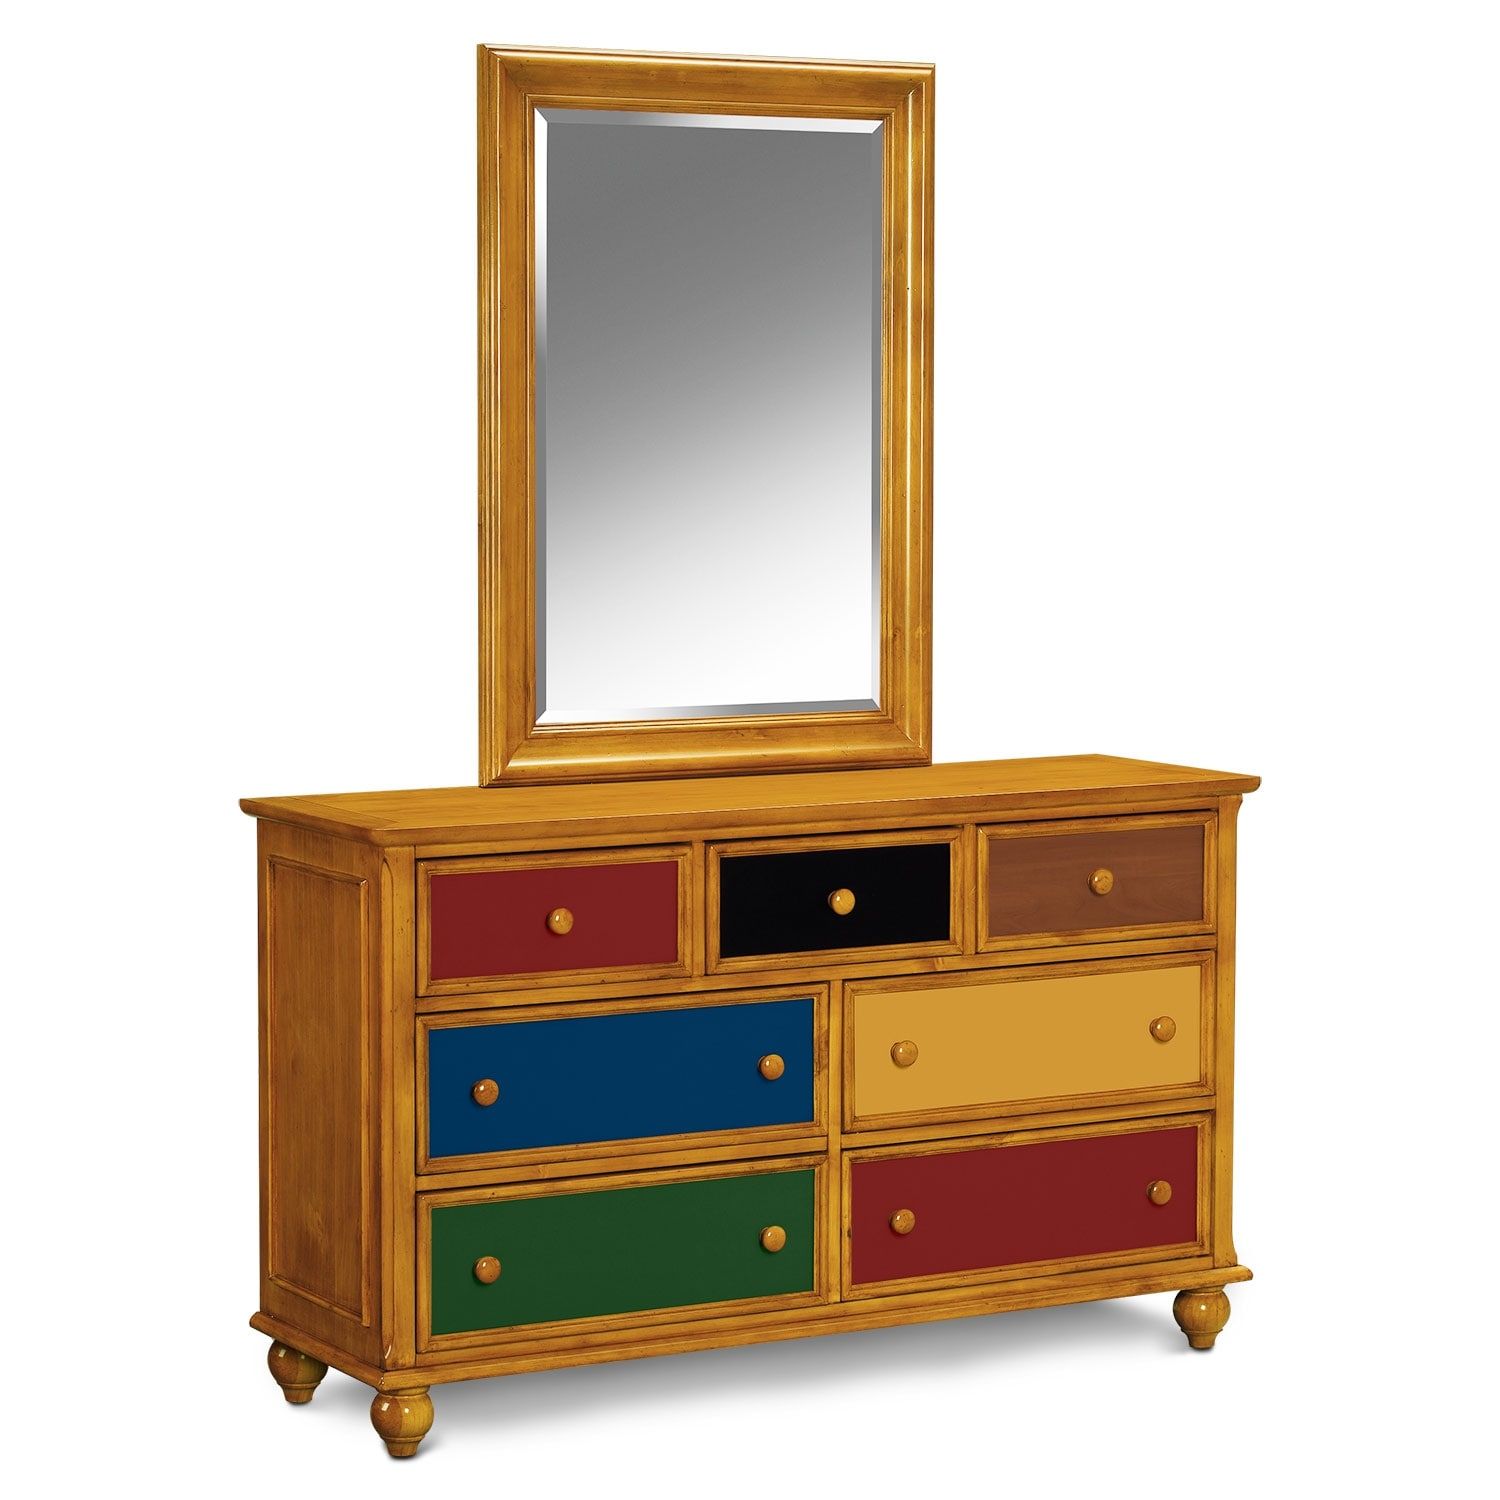 Kids Furniture - Colorworks Pine Dresser & Mirror